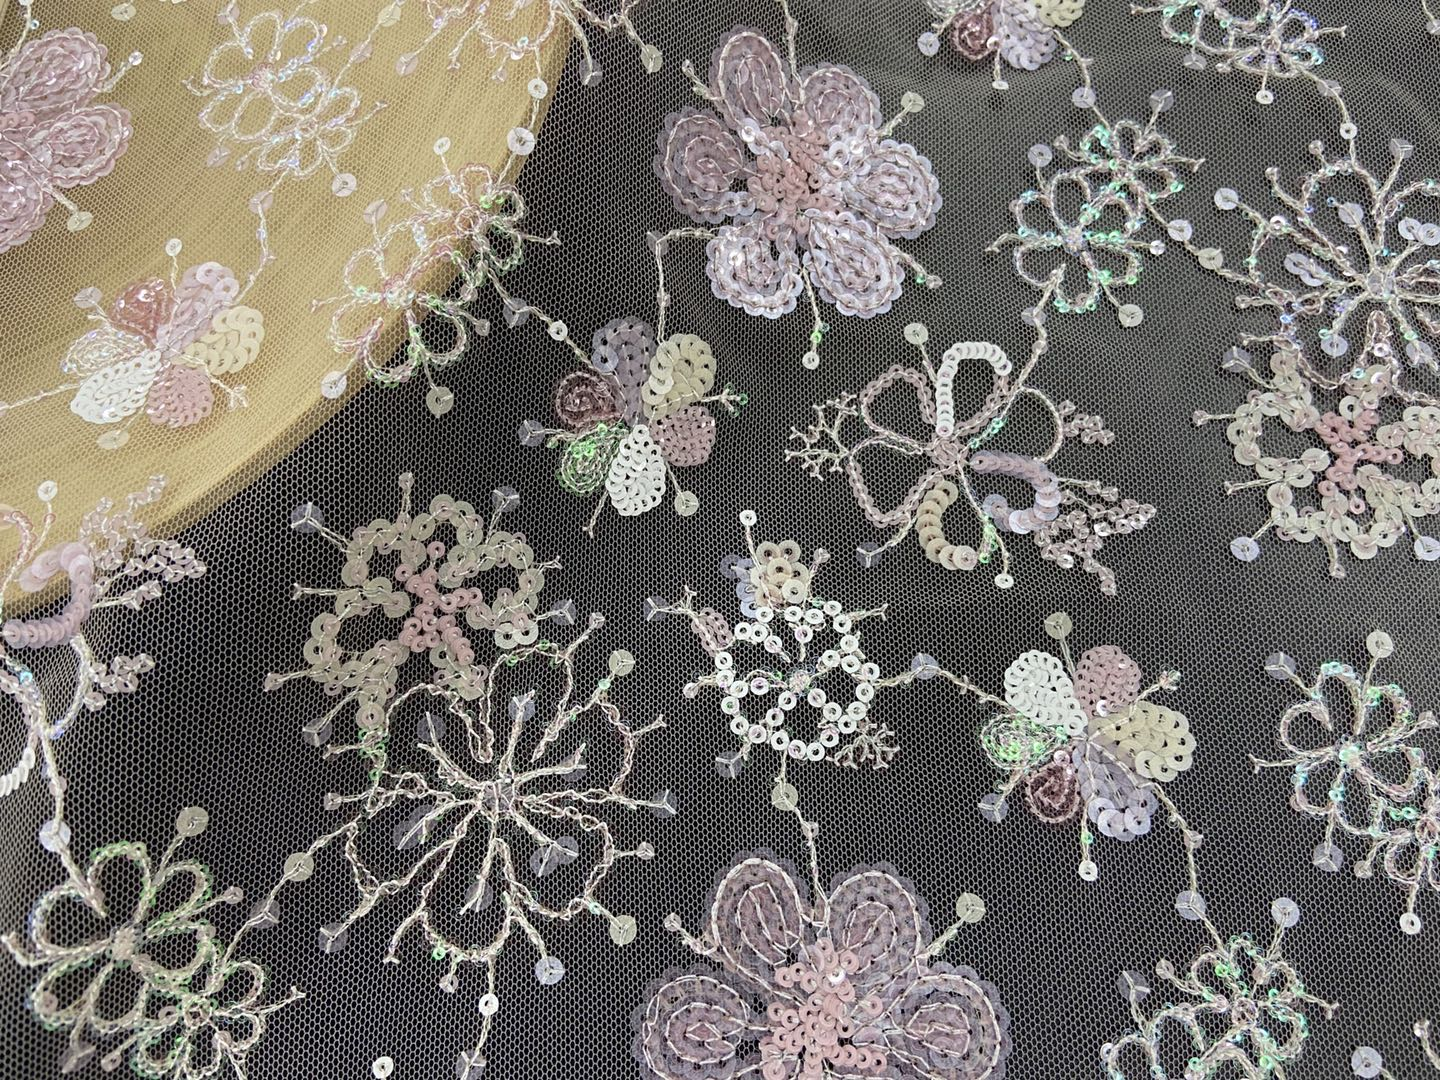 Pink-Series Blossoms Sequin Embrodiery Fabric